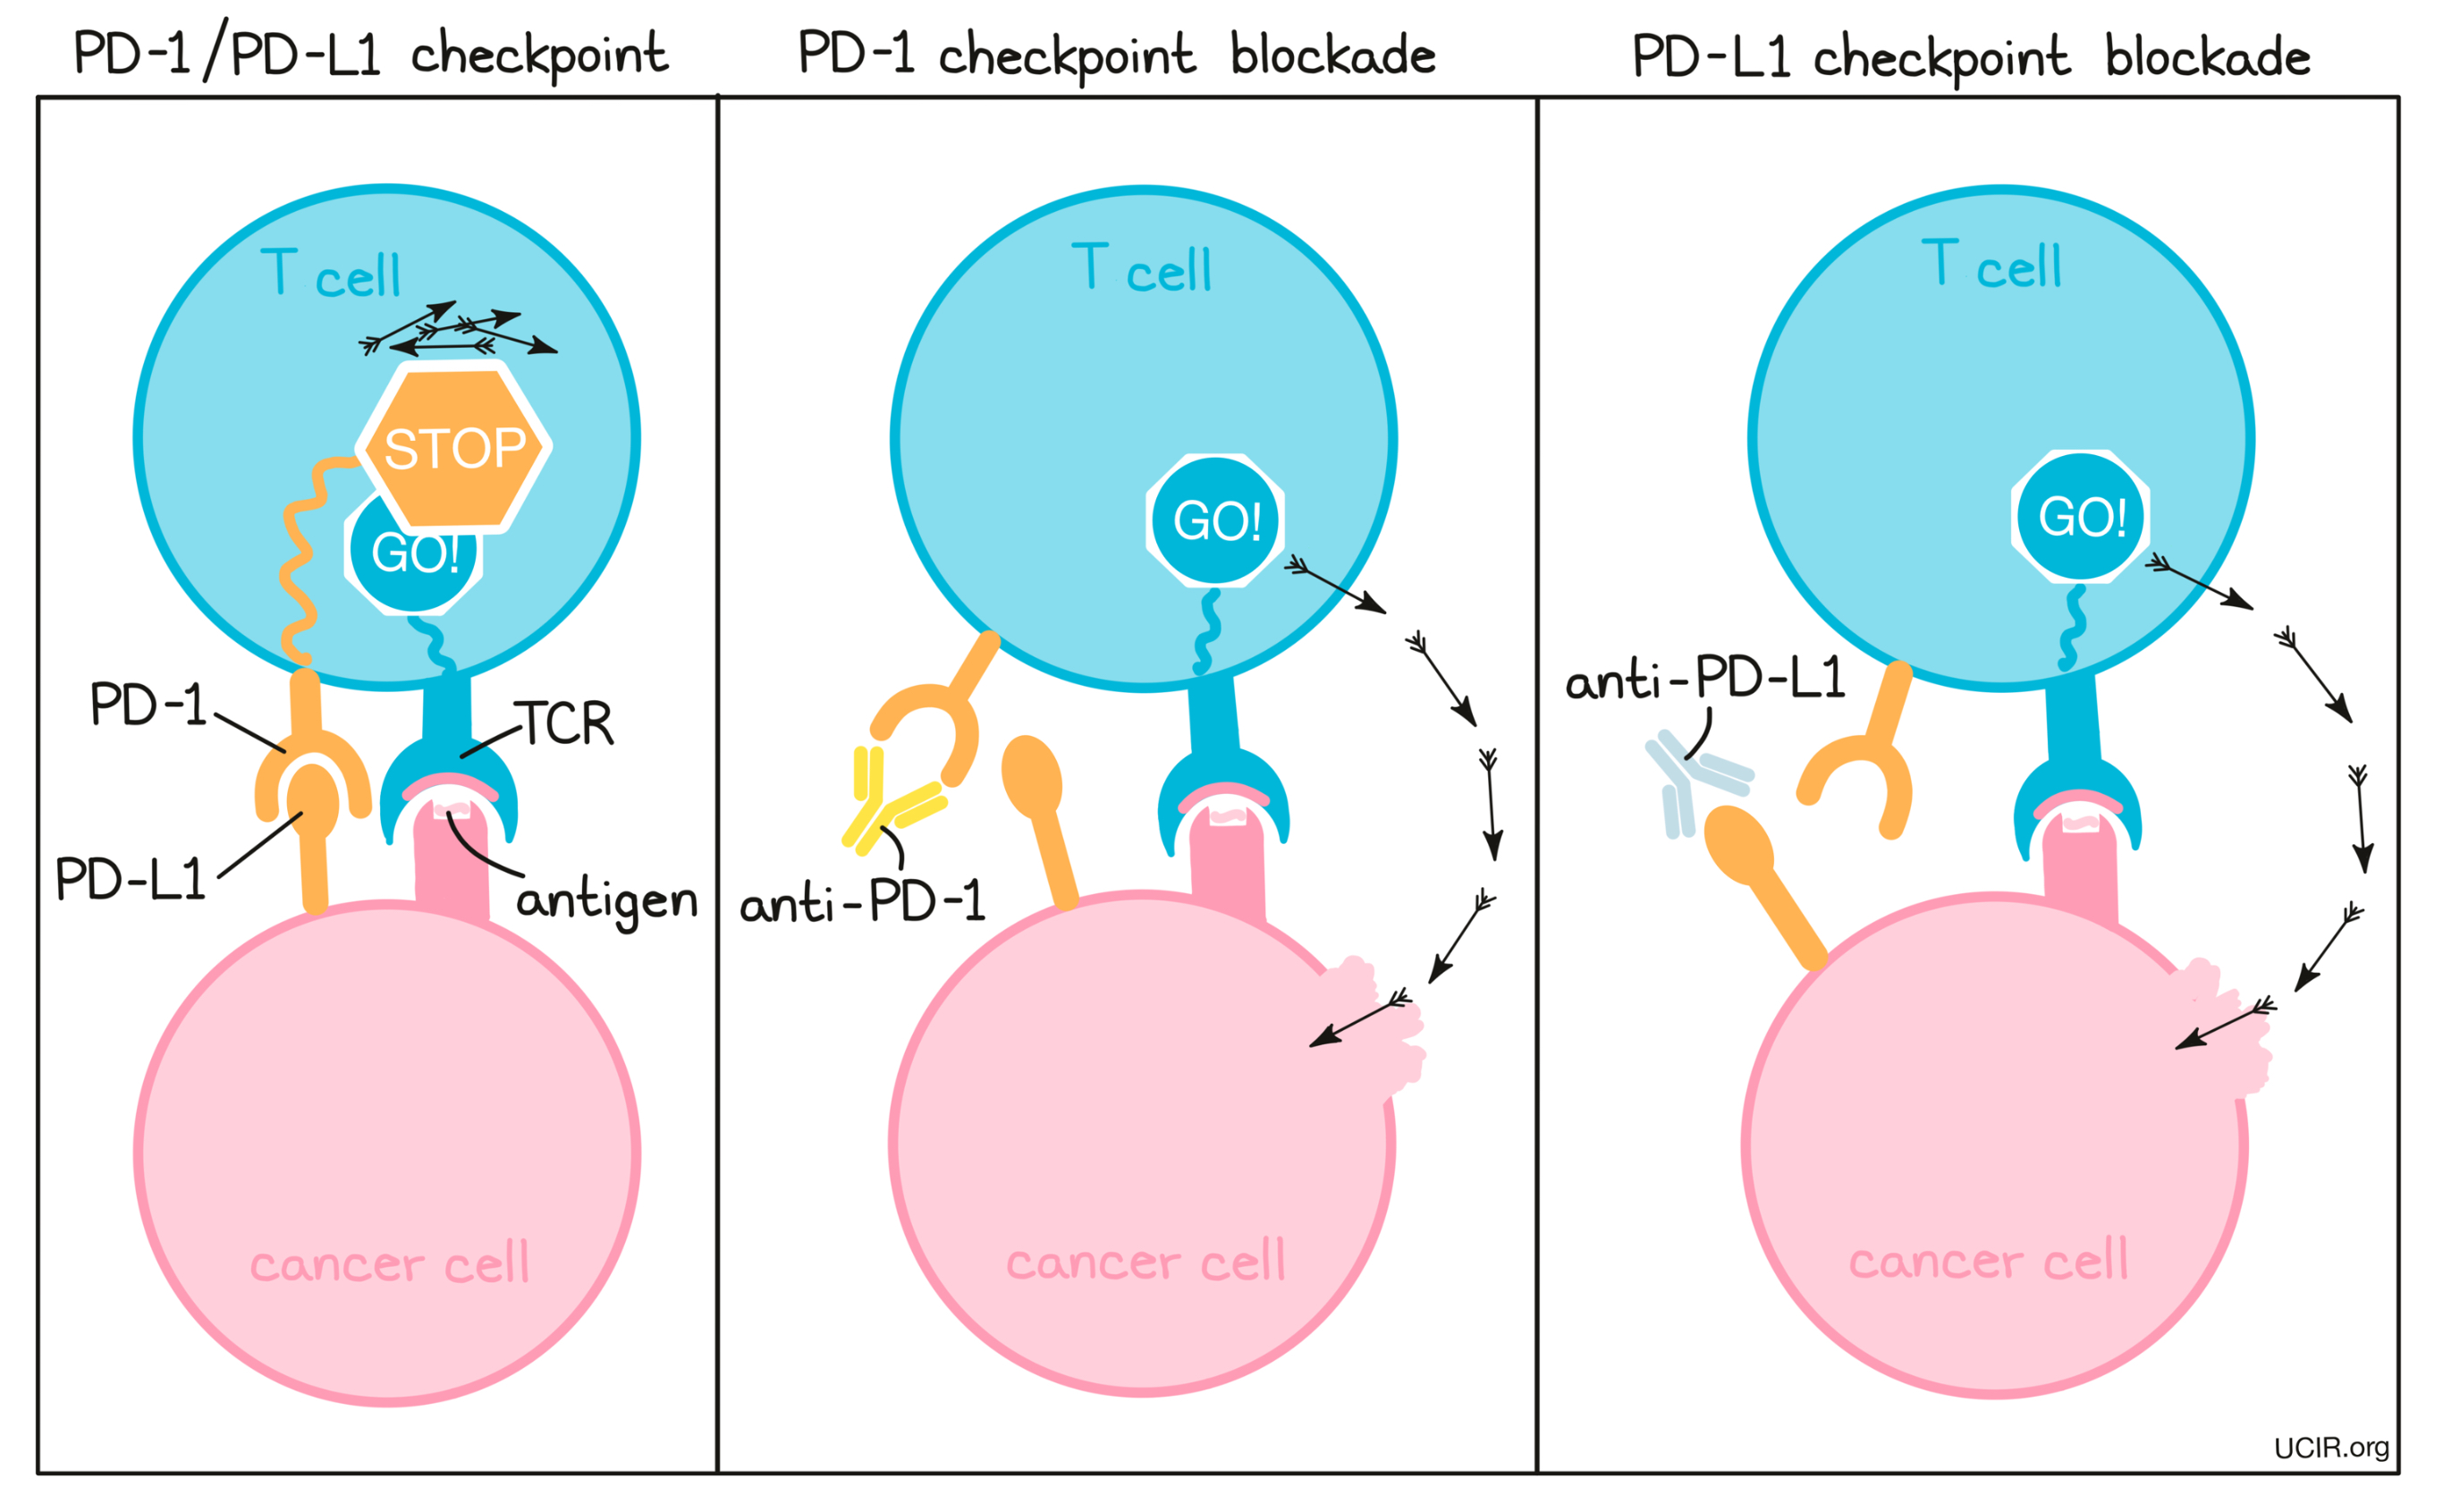 Illustration that shows the different between PD-1 and PD-L1 blockade